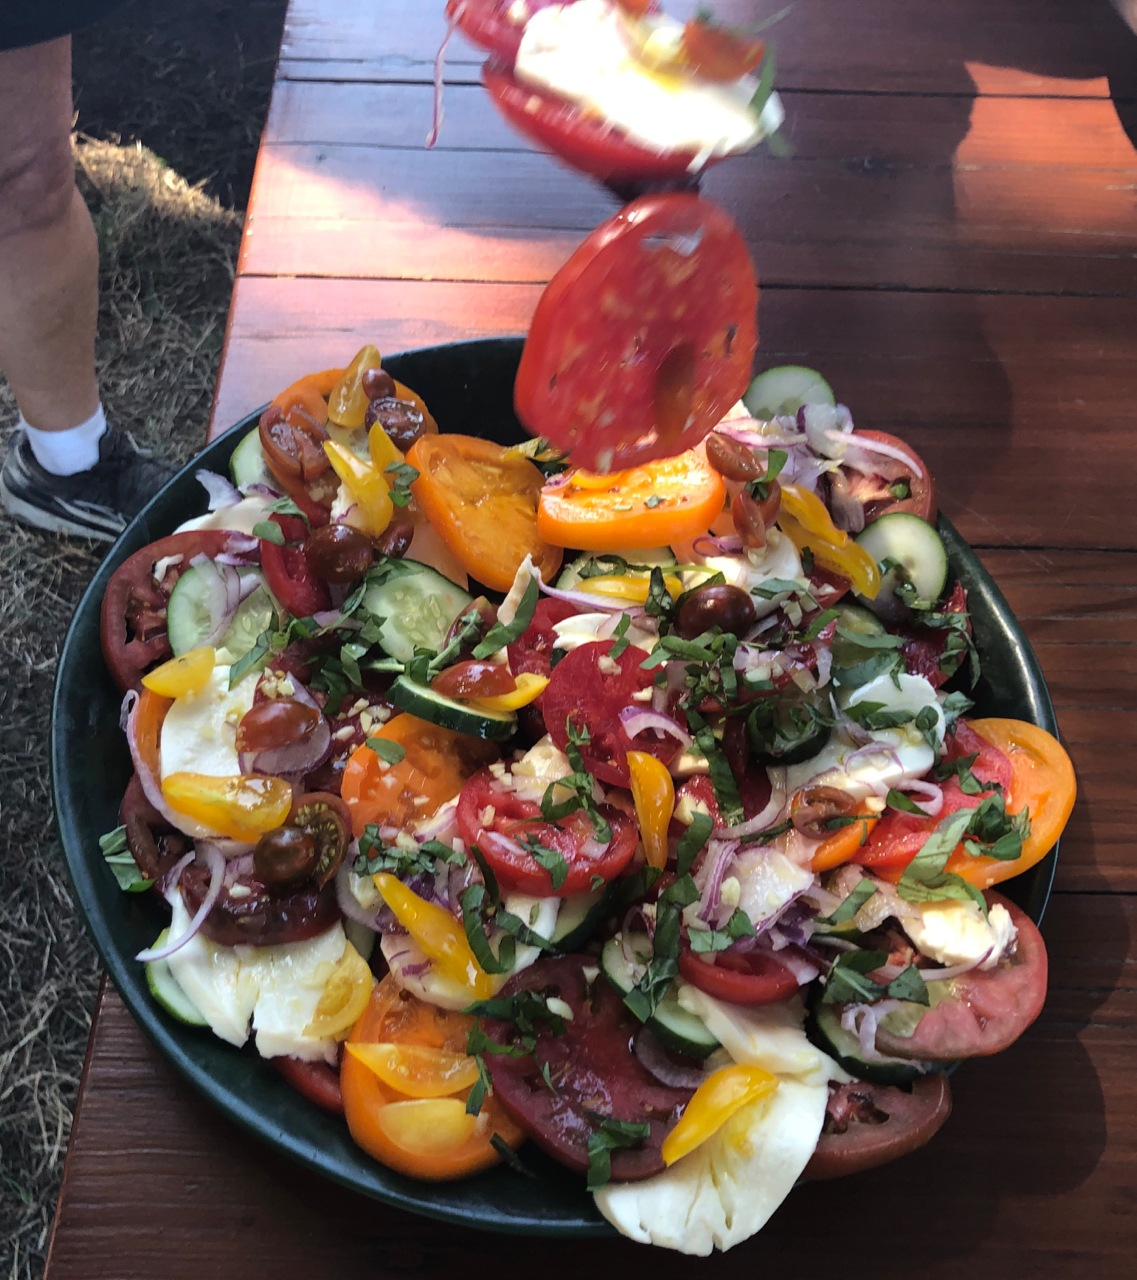 Fall Heirloom Tomatoes, Mozzarella Fresca, Red Onions, and Cucumbers, with Olive Oil & Basil